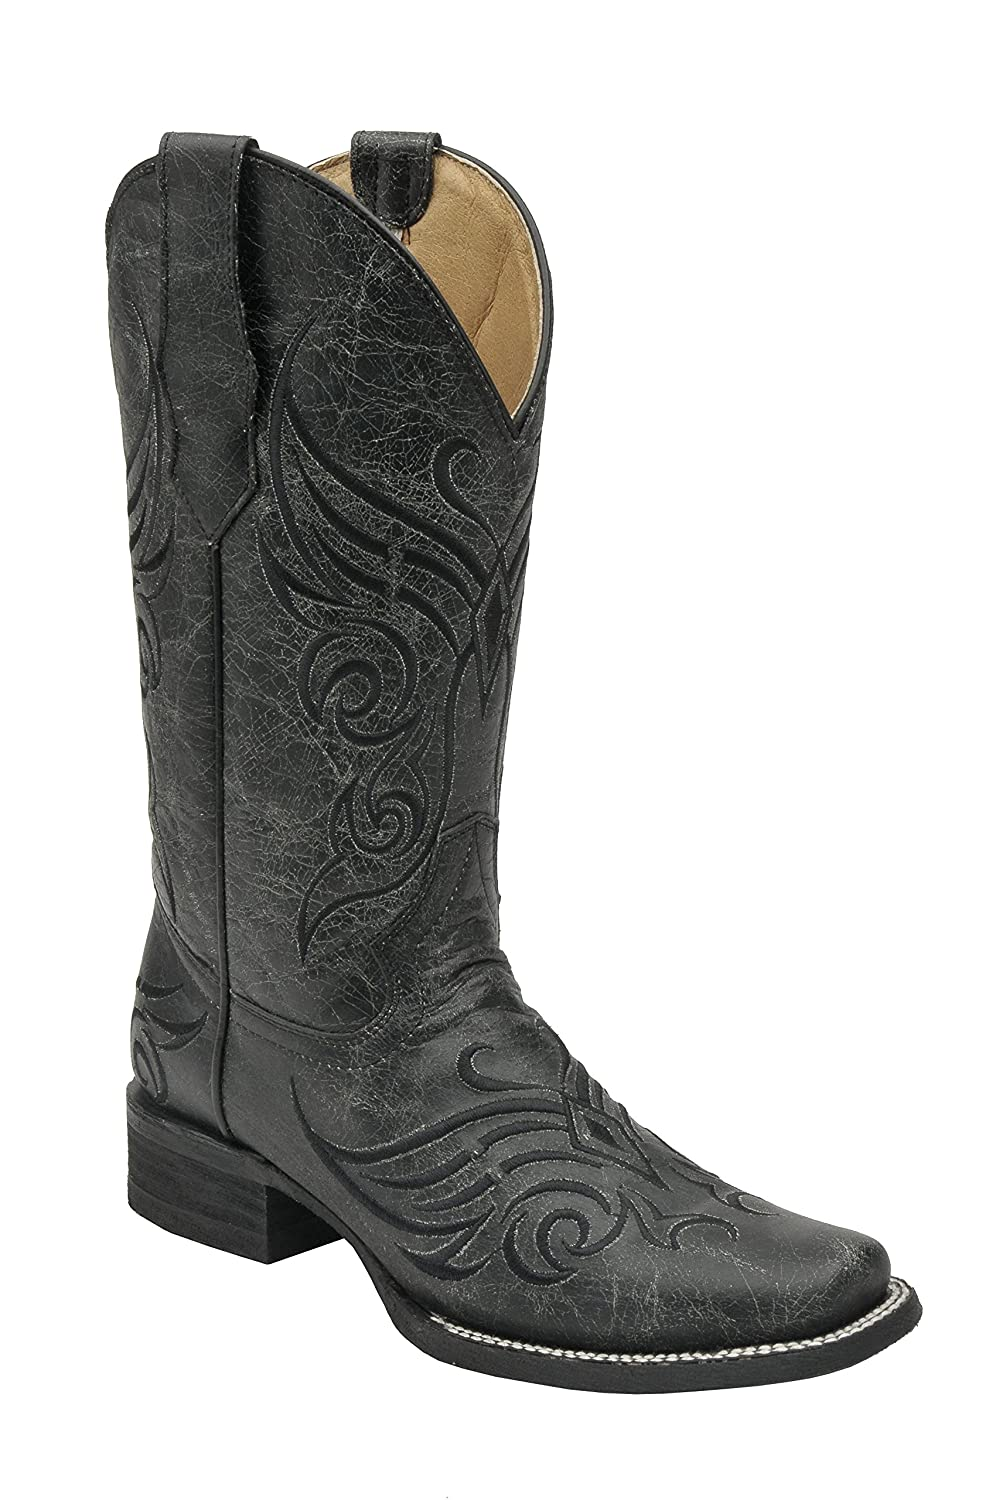 Corral Circle G Women's Embroidered Crackled Black Leather Cowgirl Boots B01F31YDDU 8 B(M) US|Black